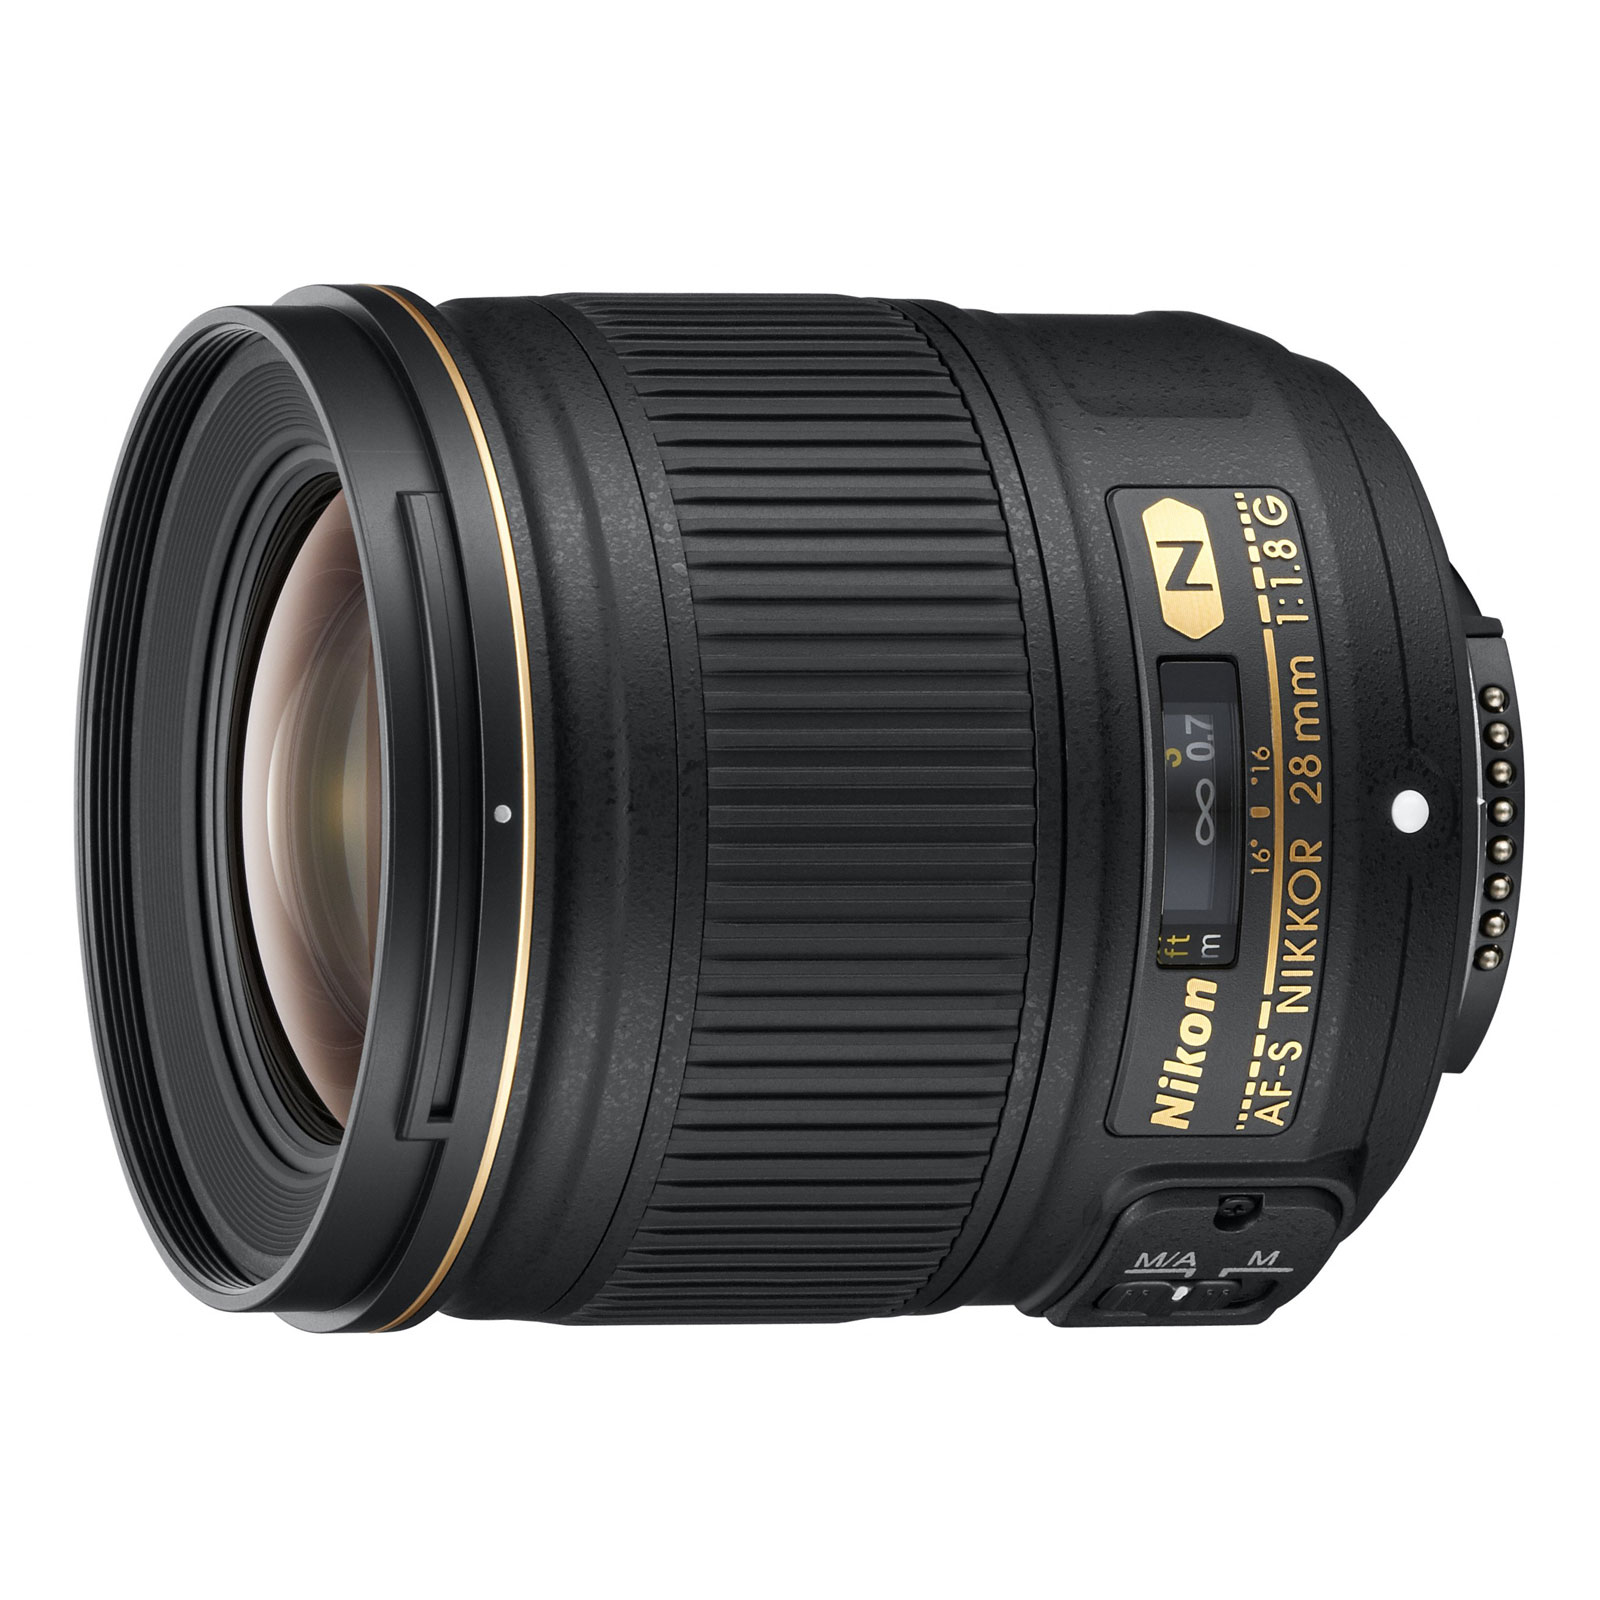 nikon af s nikkor 28mm f 1 8g objectif appareil photo nikon sur ldlc. Black Bedroom Furniture Sets. Home Design Ideas